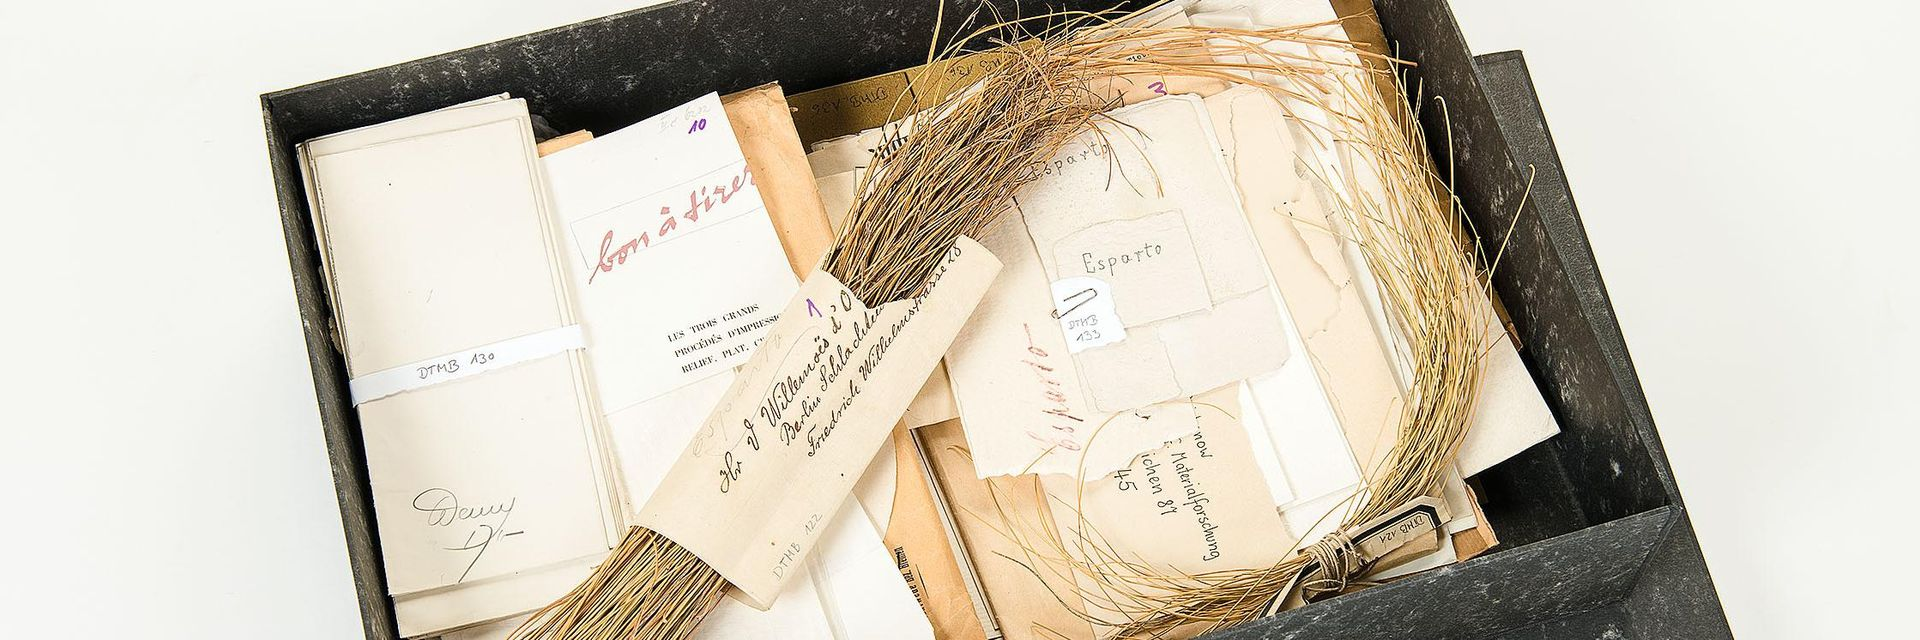 An open gray box with many envelopes and samples of various grass papers as well as dried grasses.